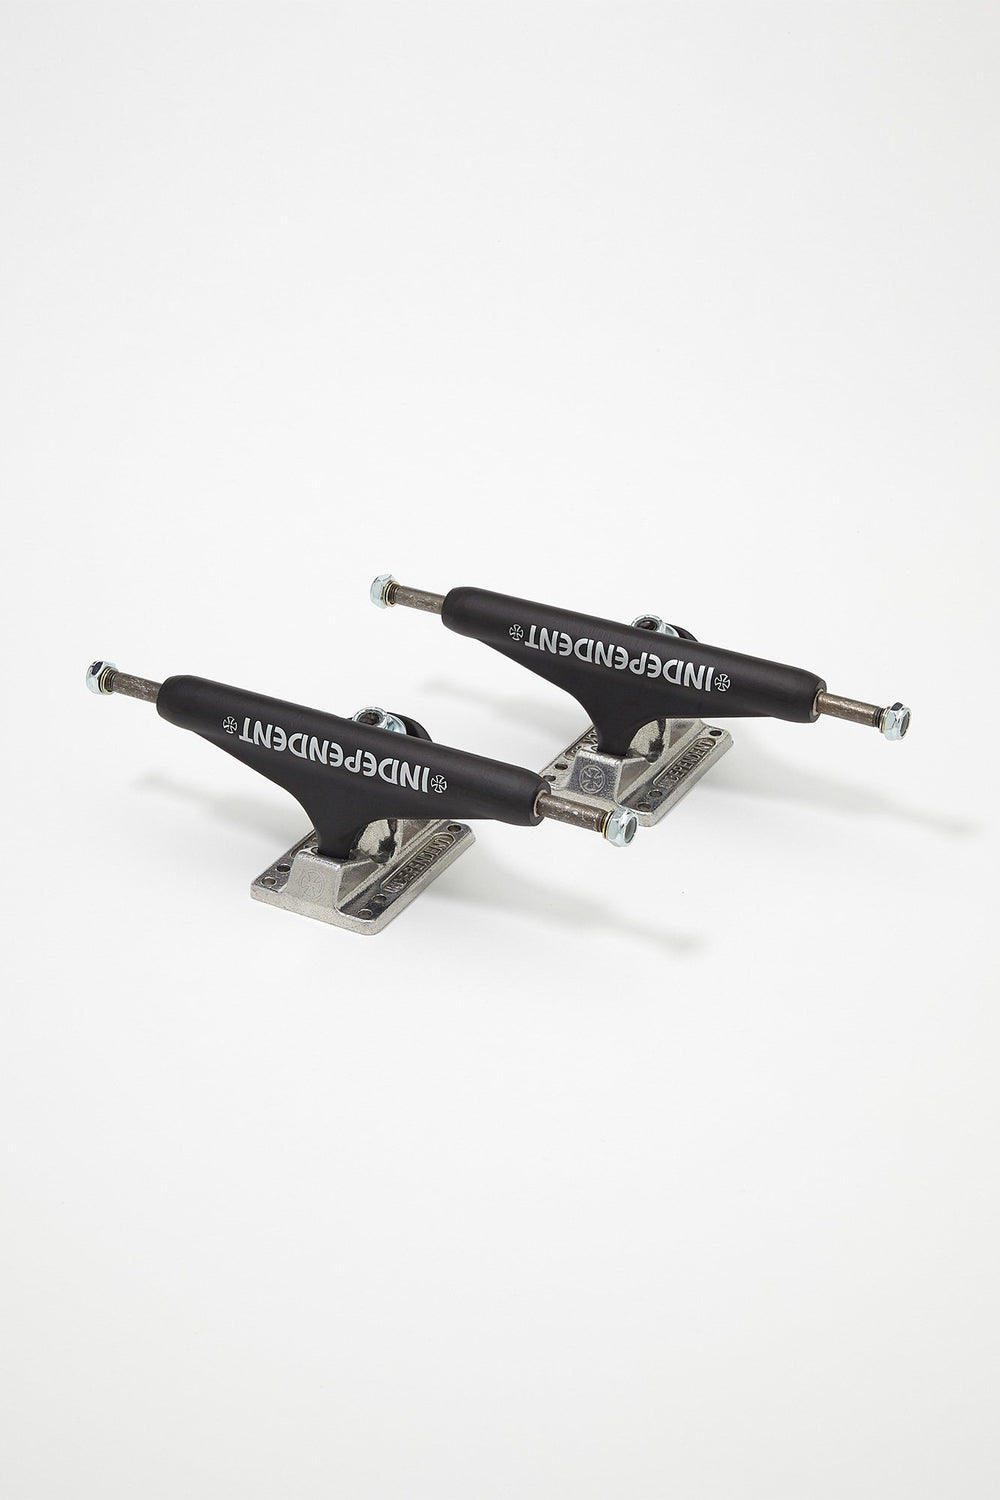 Independent Stage XI Bar Standard Trucks 159mm Silver